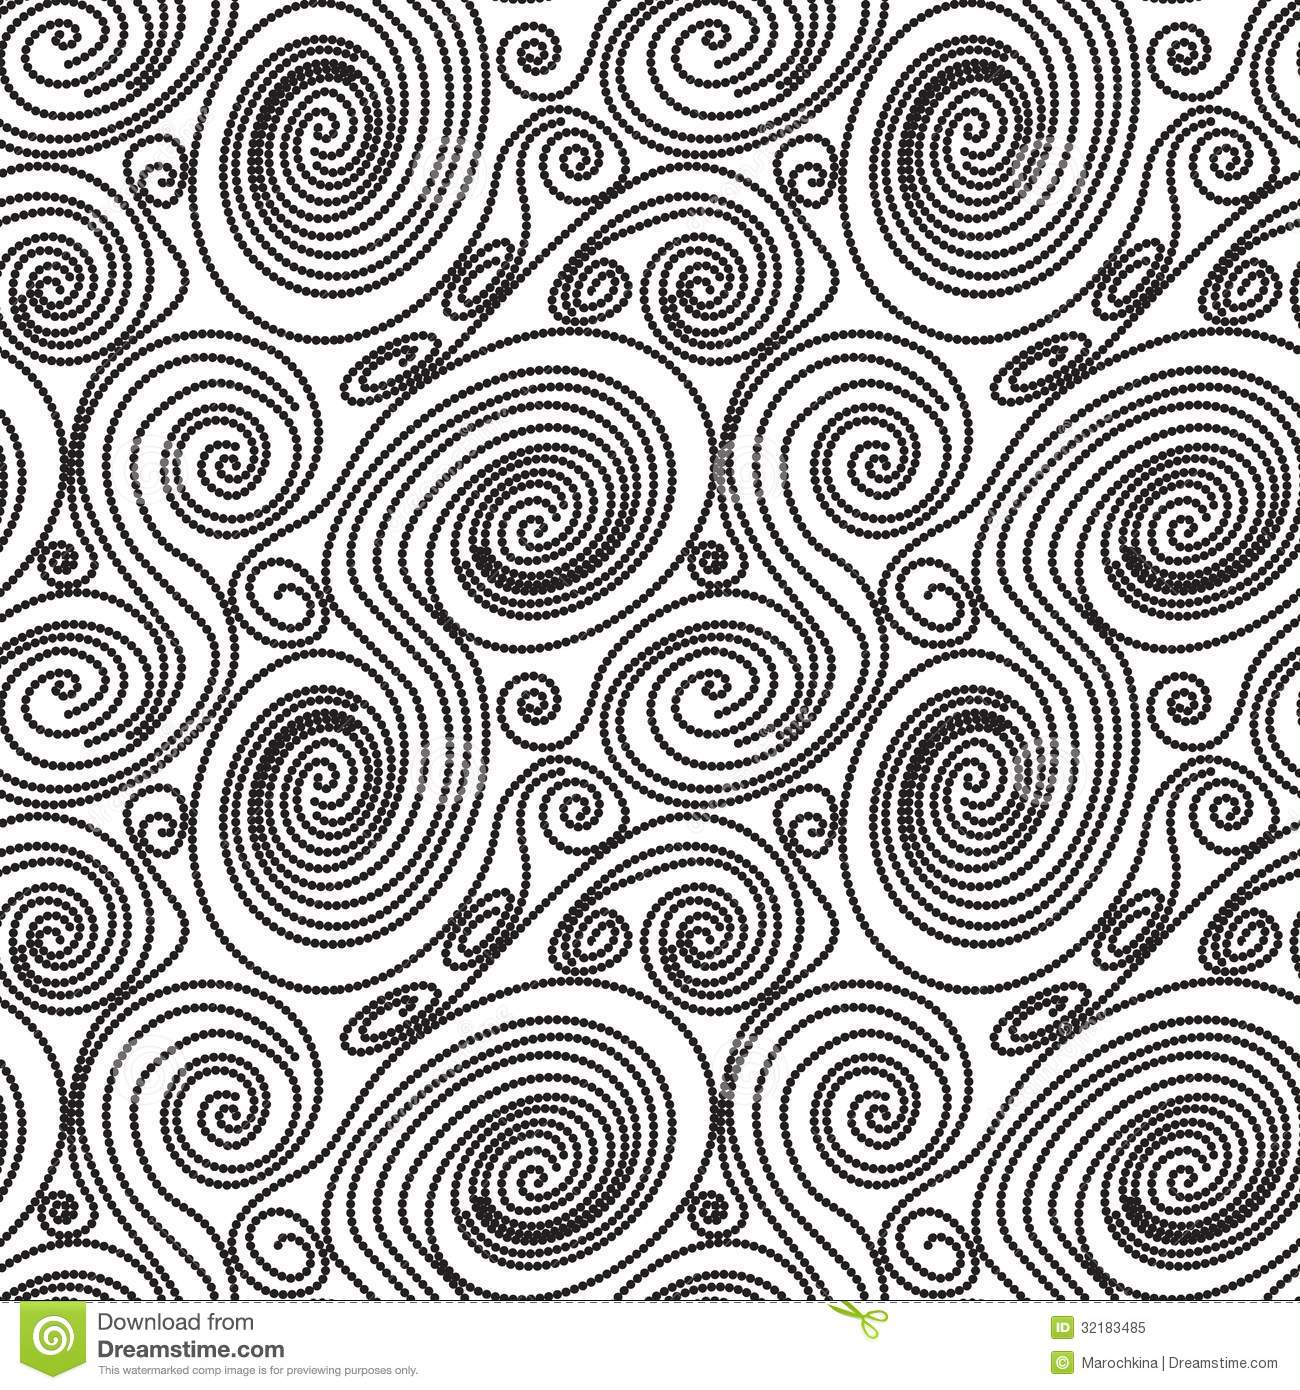 swirl coloring pages Kaysmakehaukco